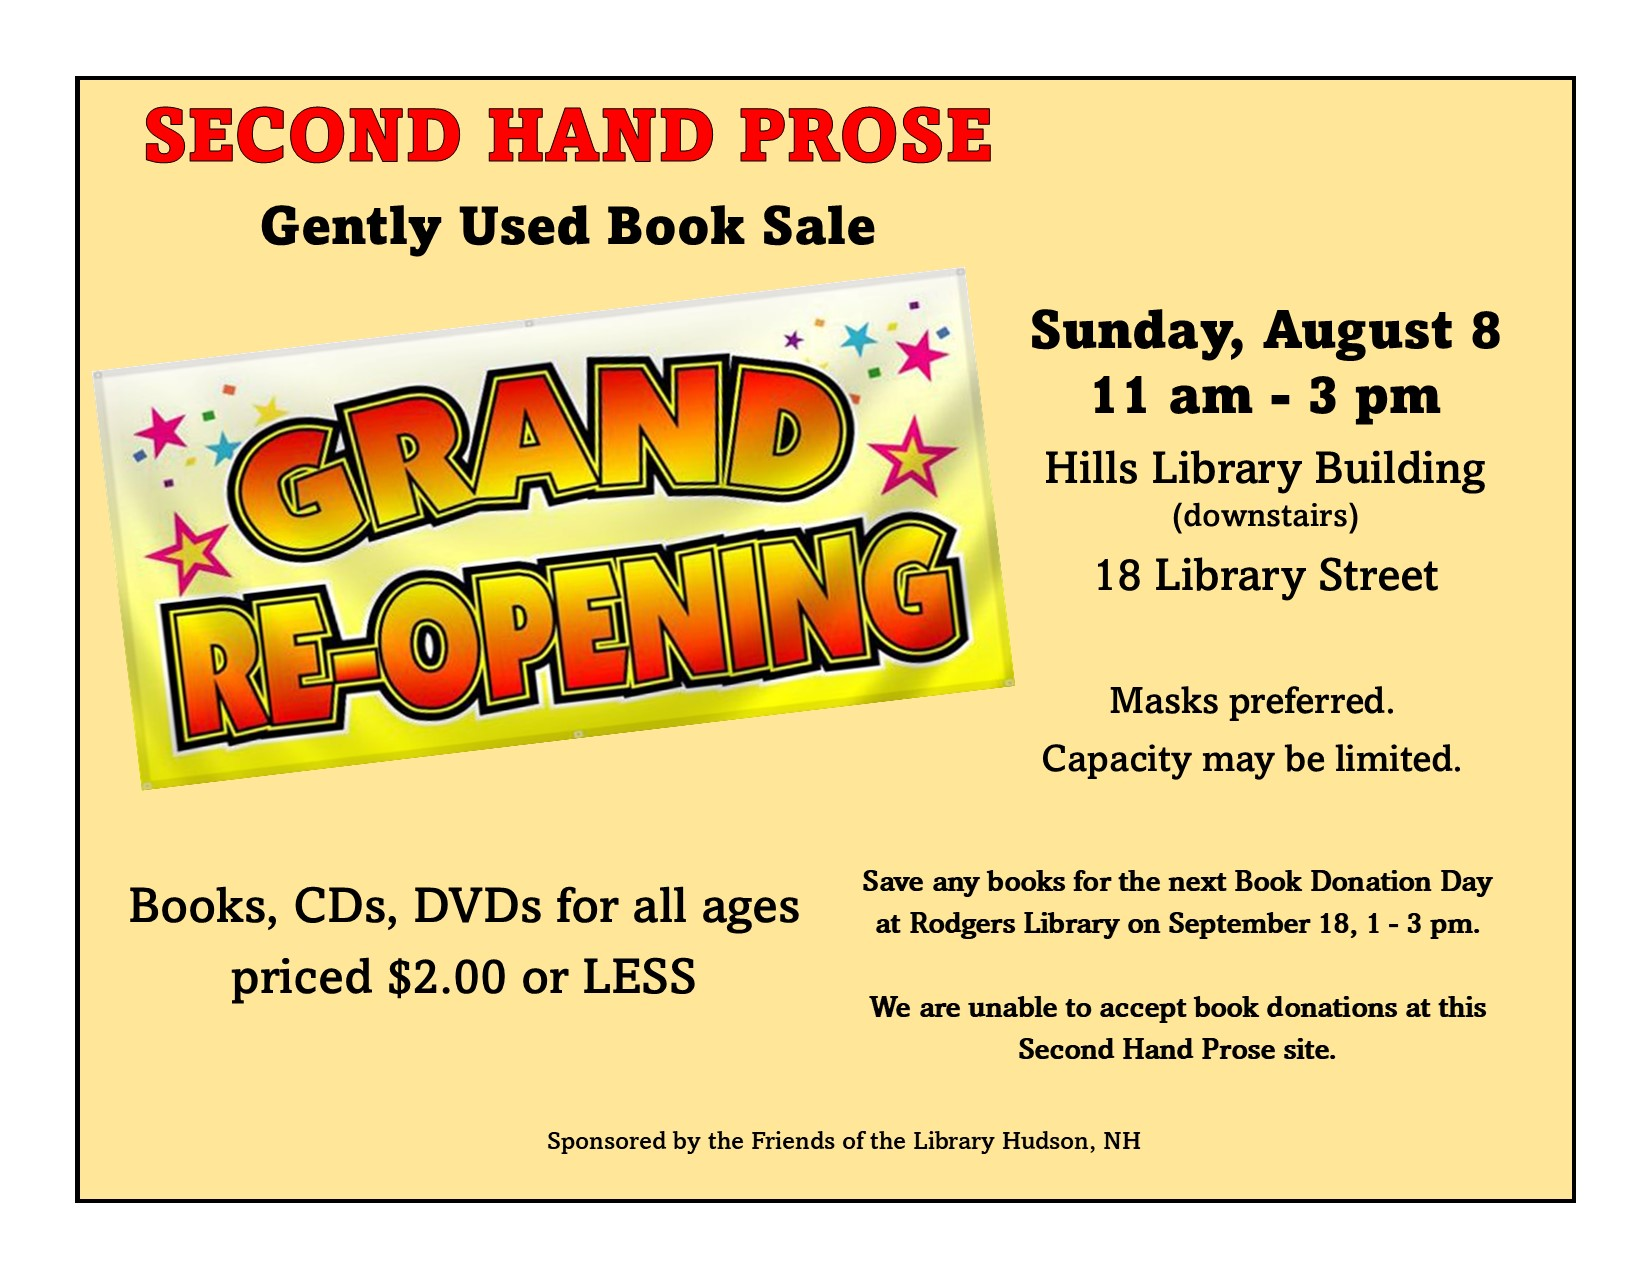 Second Hand Prose: Gently Used Book Sale